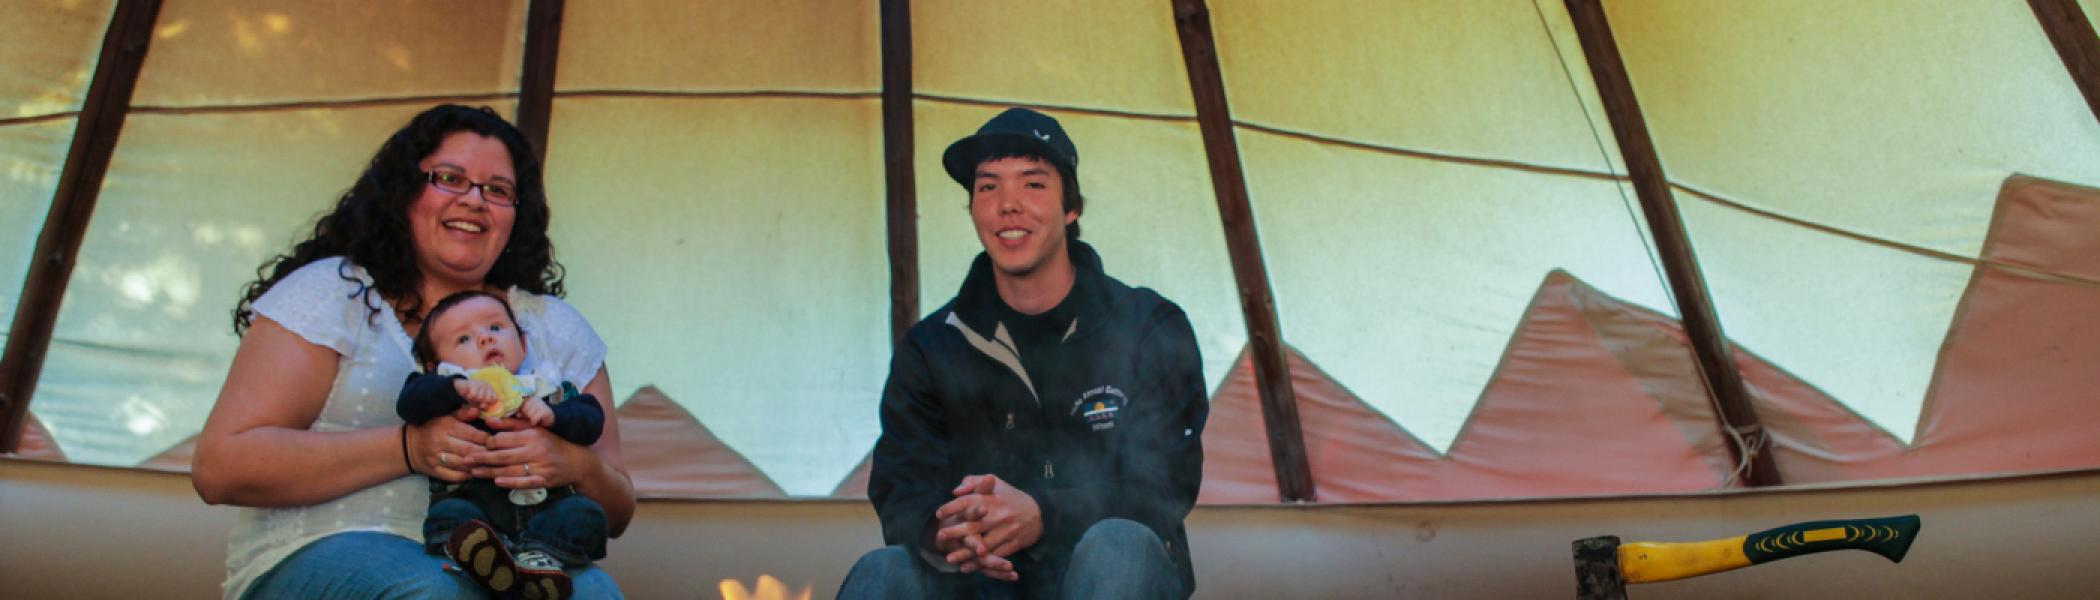 2 Students sitting in a tipi in front of a fire, smiling at the camera